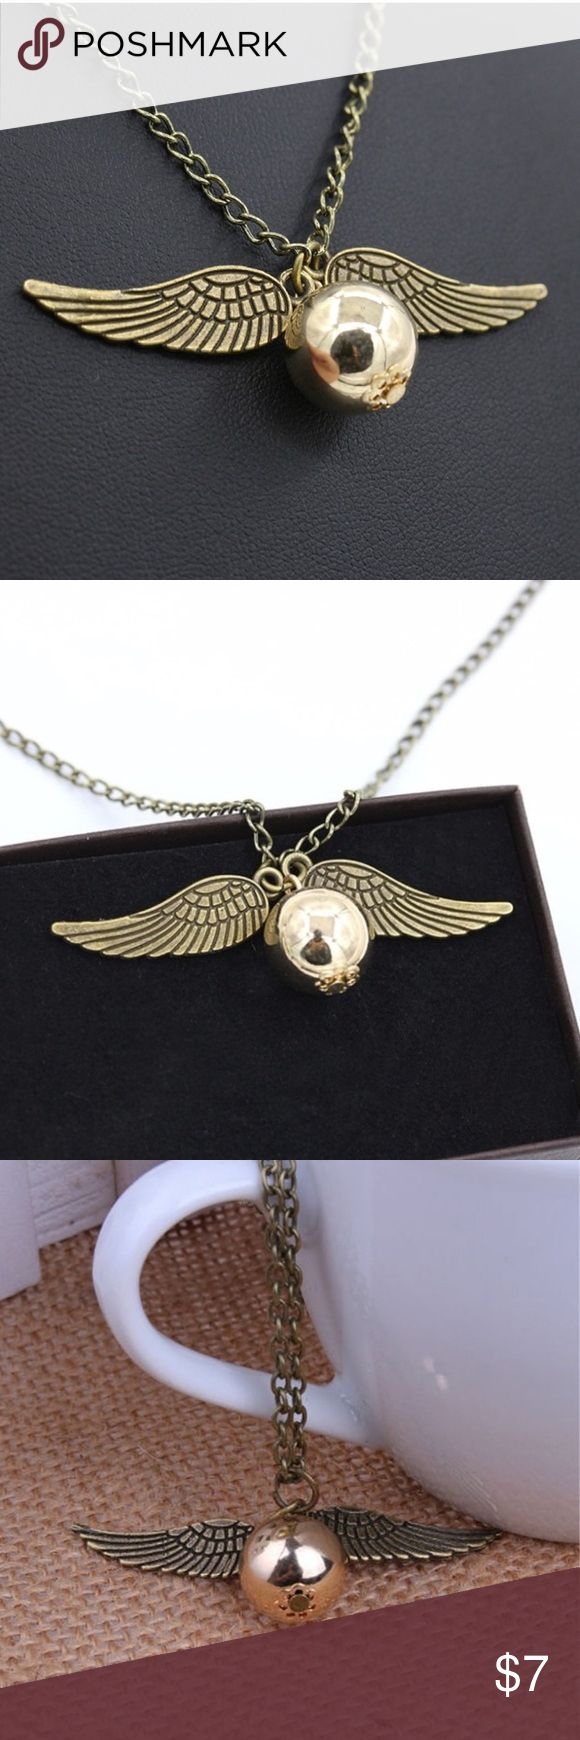 HARRY POTTER Golden Sneaker Necklace NWT Harry Potter Golden Sneaker Necklace NWT Harry Potter Jewelry Necklaces